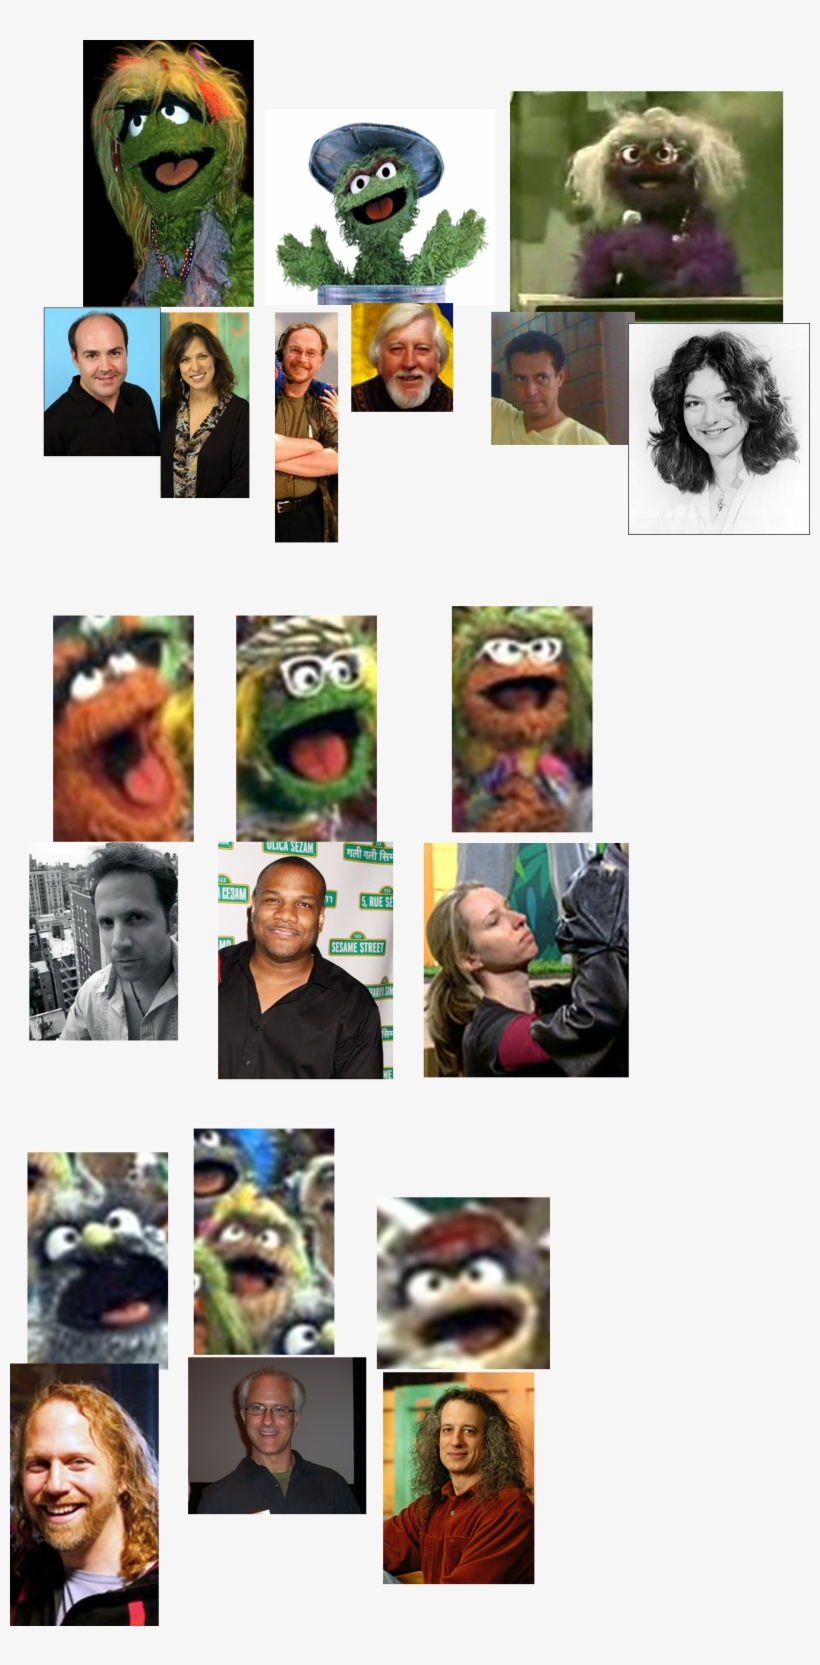 Muppet Wiki Behind The Scenes Sesame Street Episode - The Muppets, transparent png #5808035